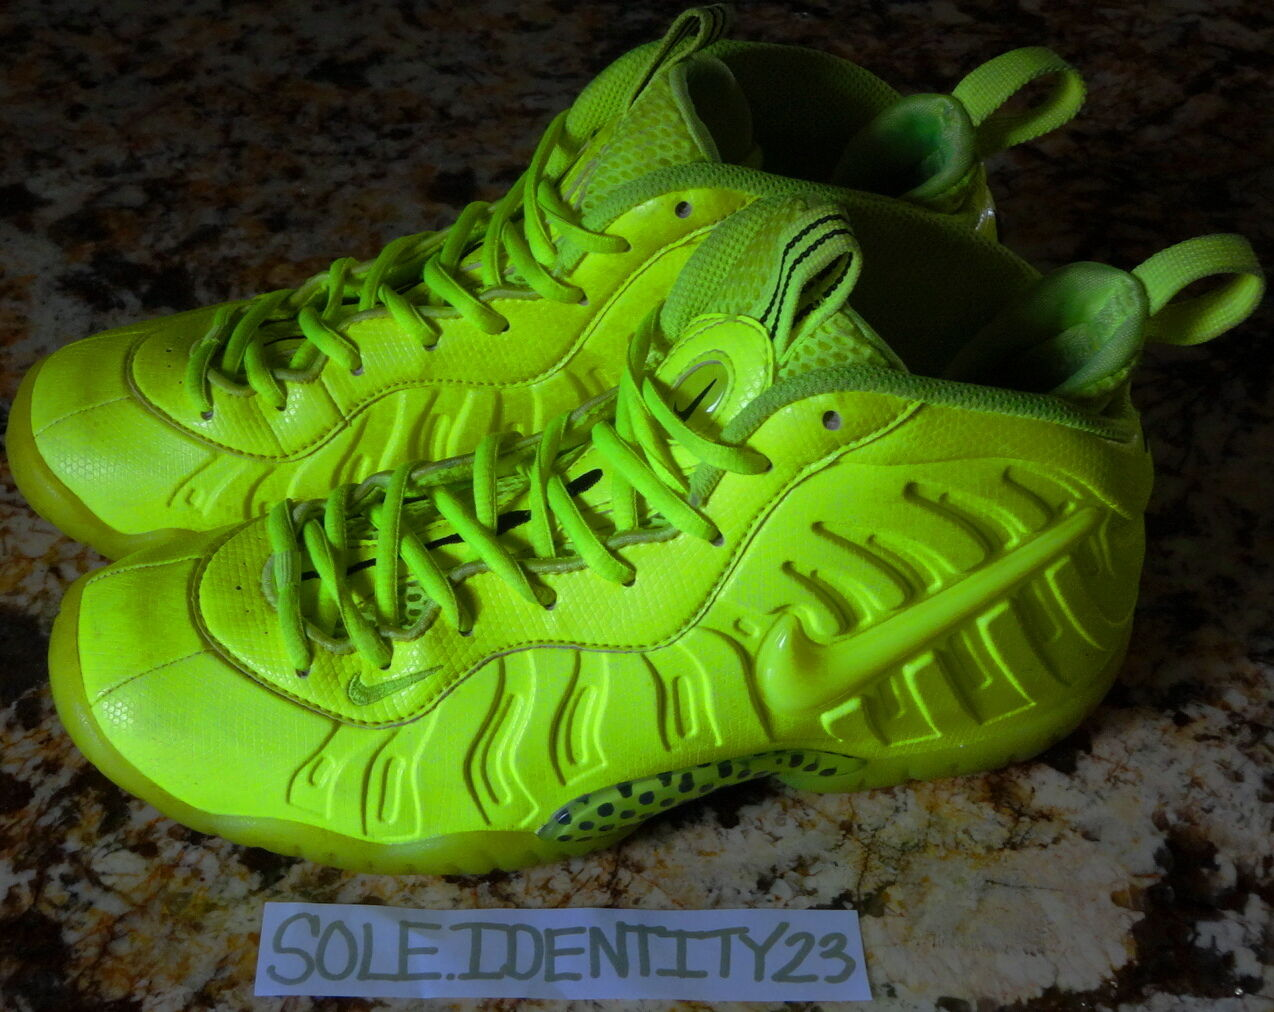 NIKE AIR FOAMPOSITE PRO ONE VOLT HIGHLIGHTER NEON Price reduction New shoes for men and women, limited time discount